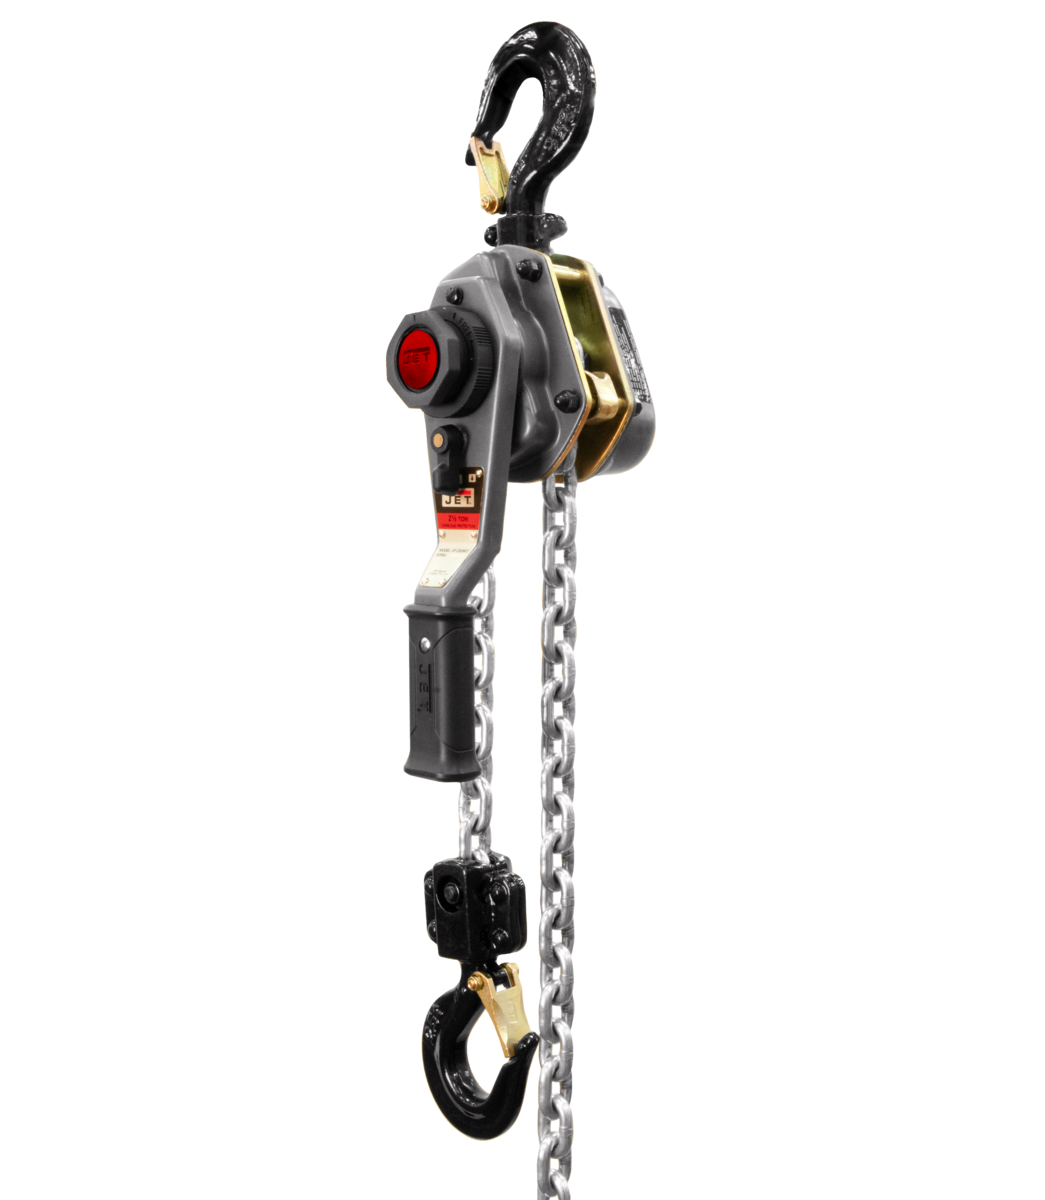 JLH Series 2-1/2 Ton Lever Hoist, 10' Lift with Overload Protection